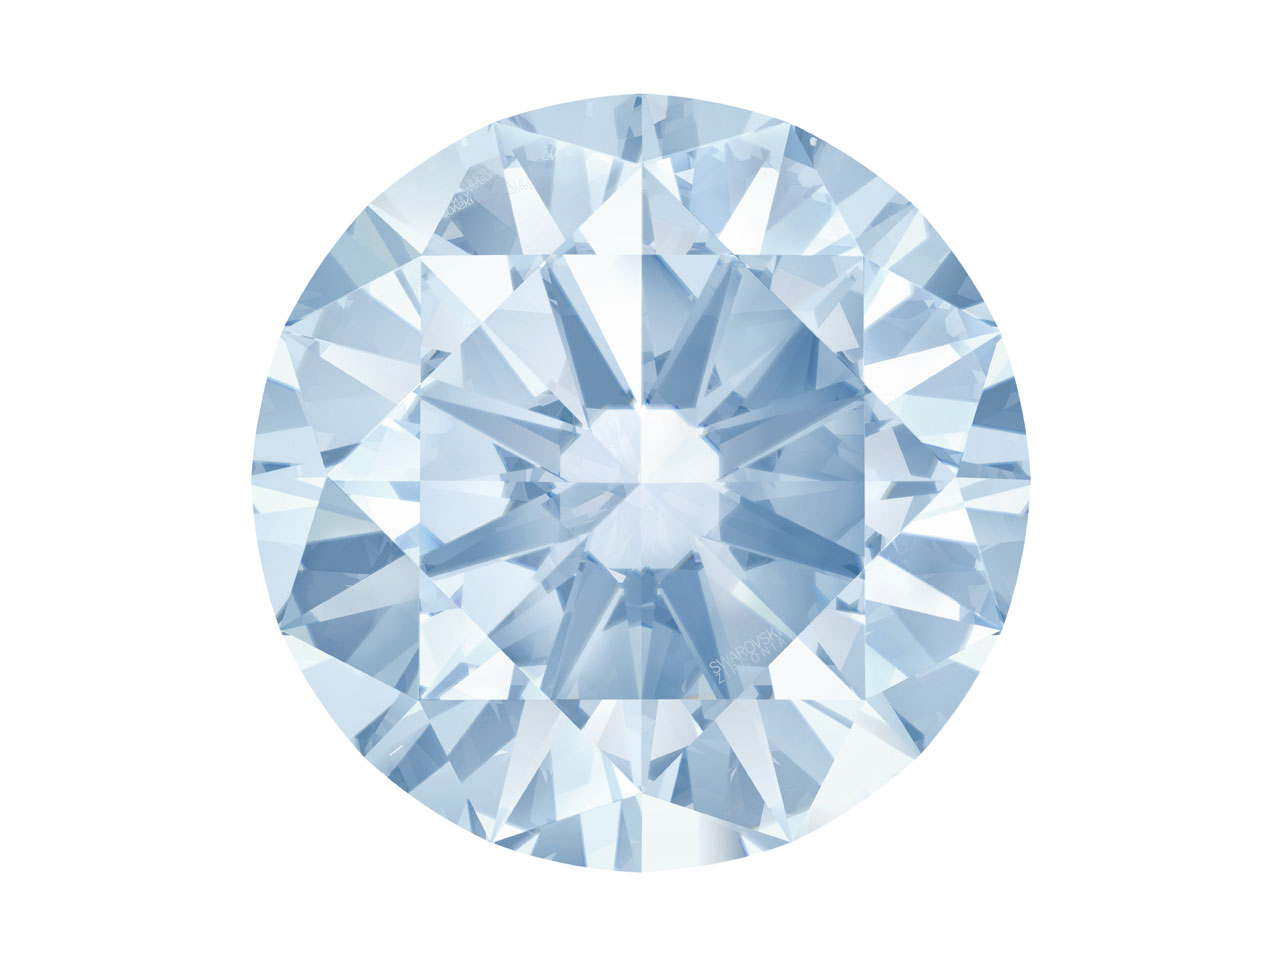 Swarovski Zirconia Round           Pure Brilliance Cut 4.0mm Greyish  Blue